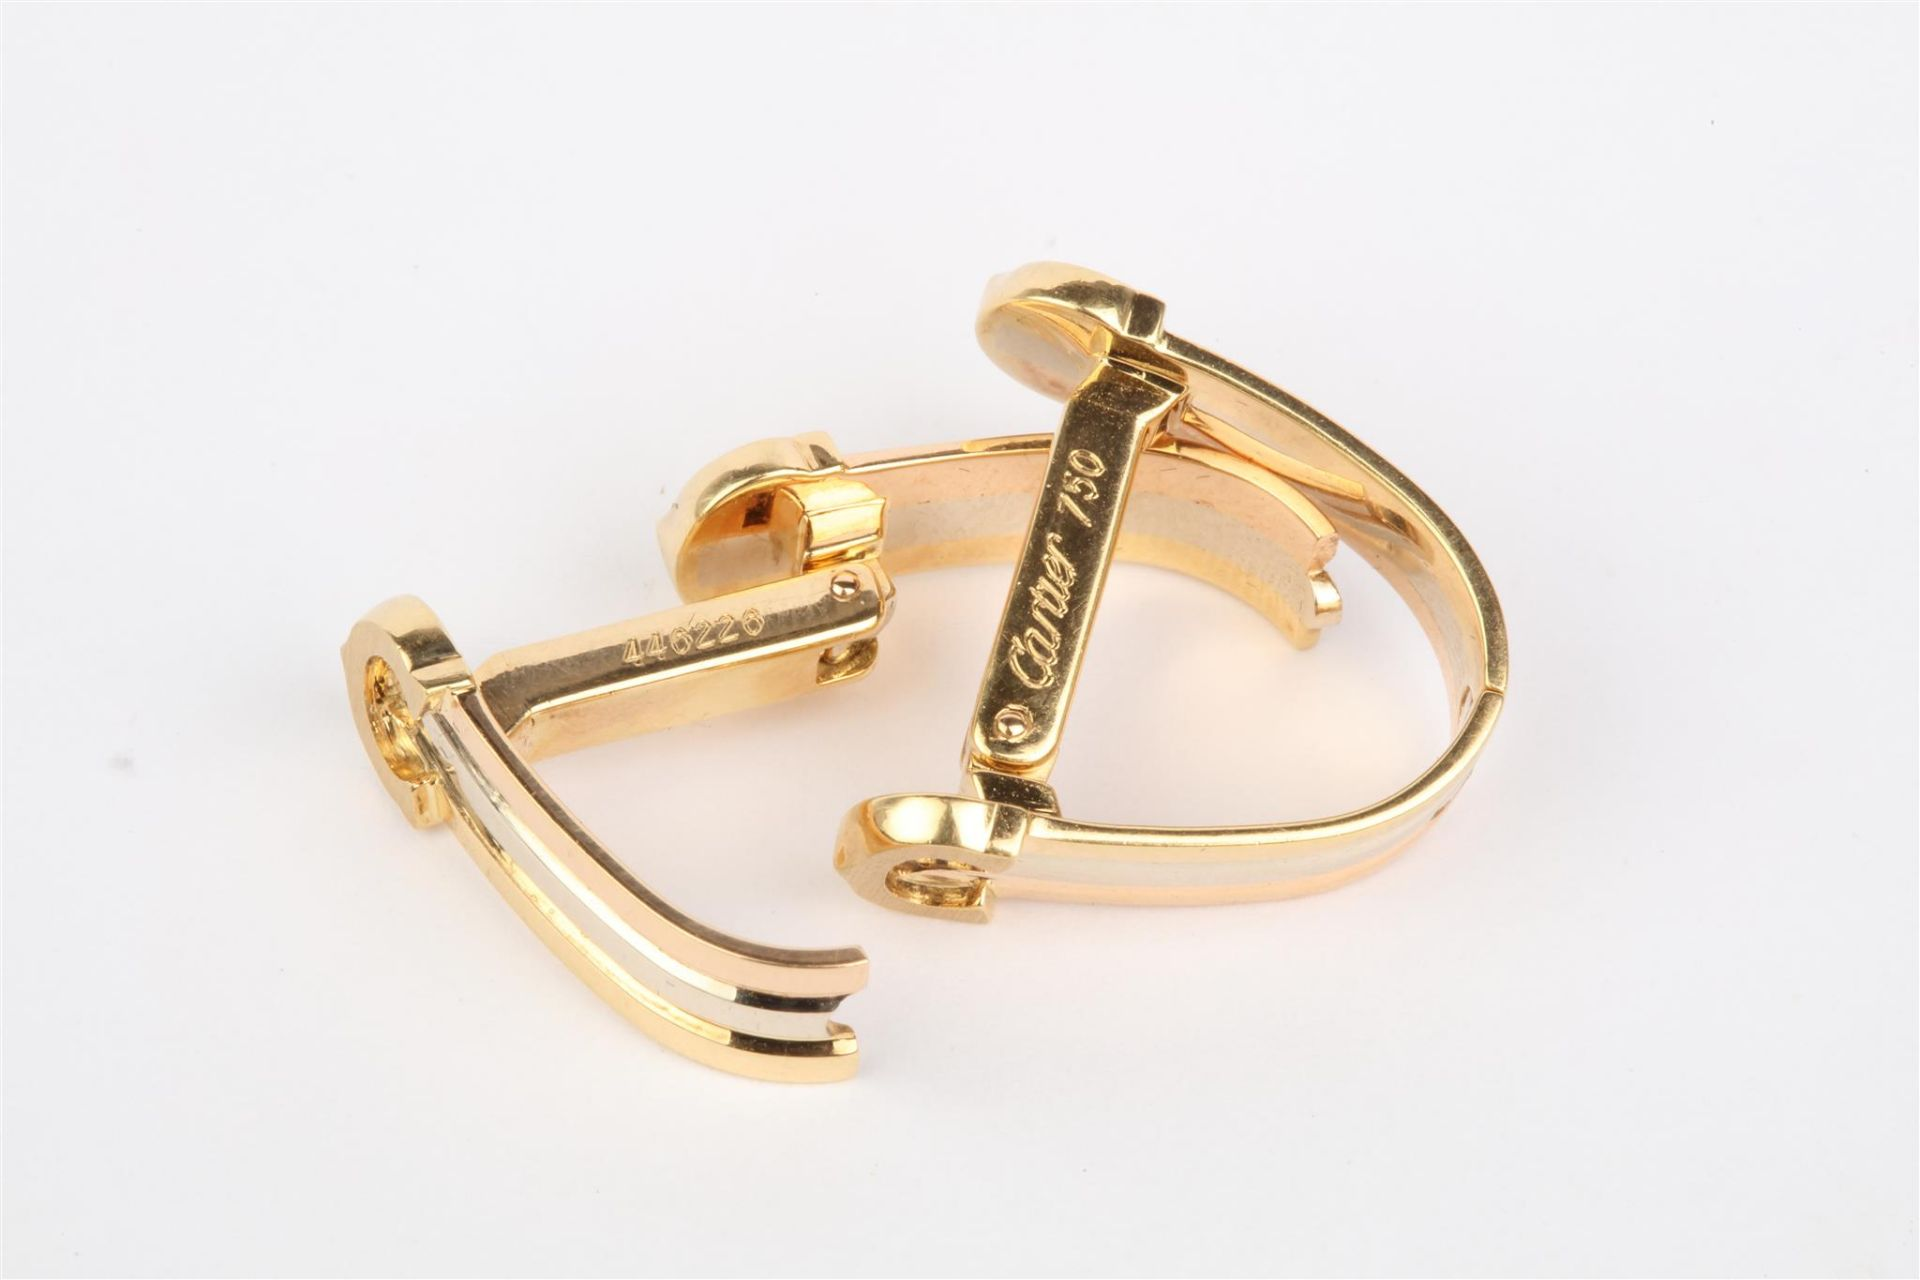 No VAT Pair Ladies Cartier 18ct Gold Trinity Clip On Earrings With 18ct White Gold - 18ct Yellow